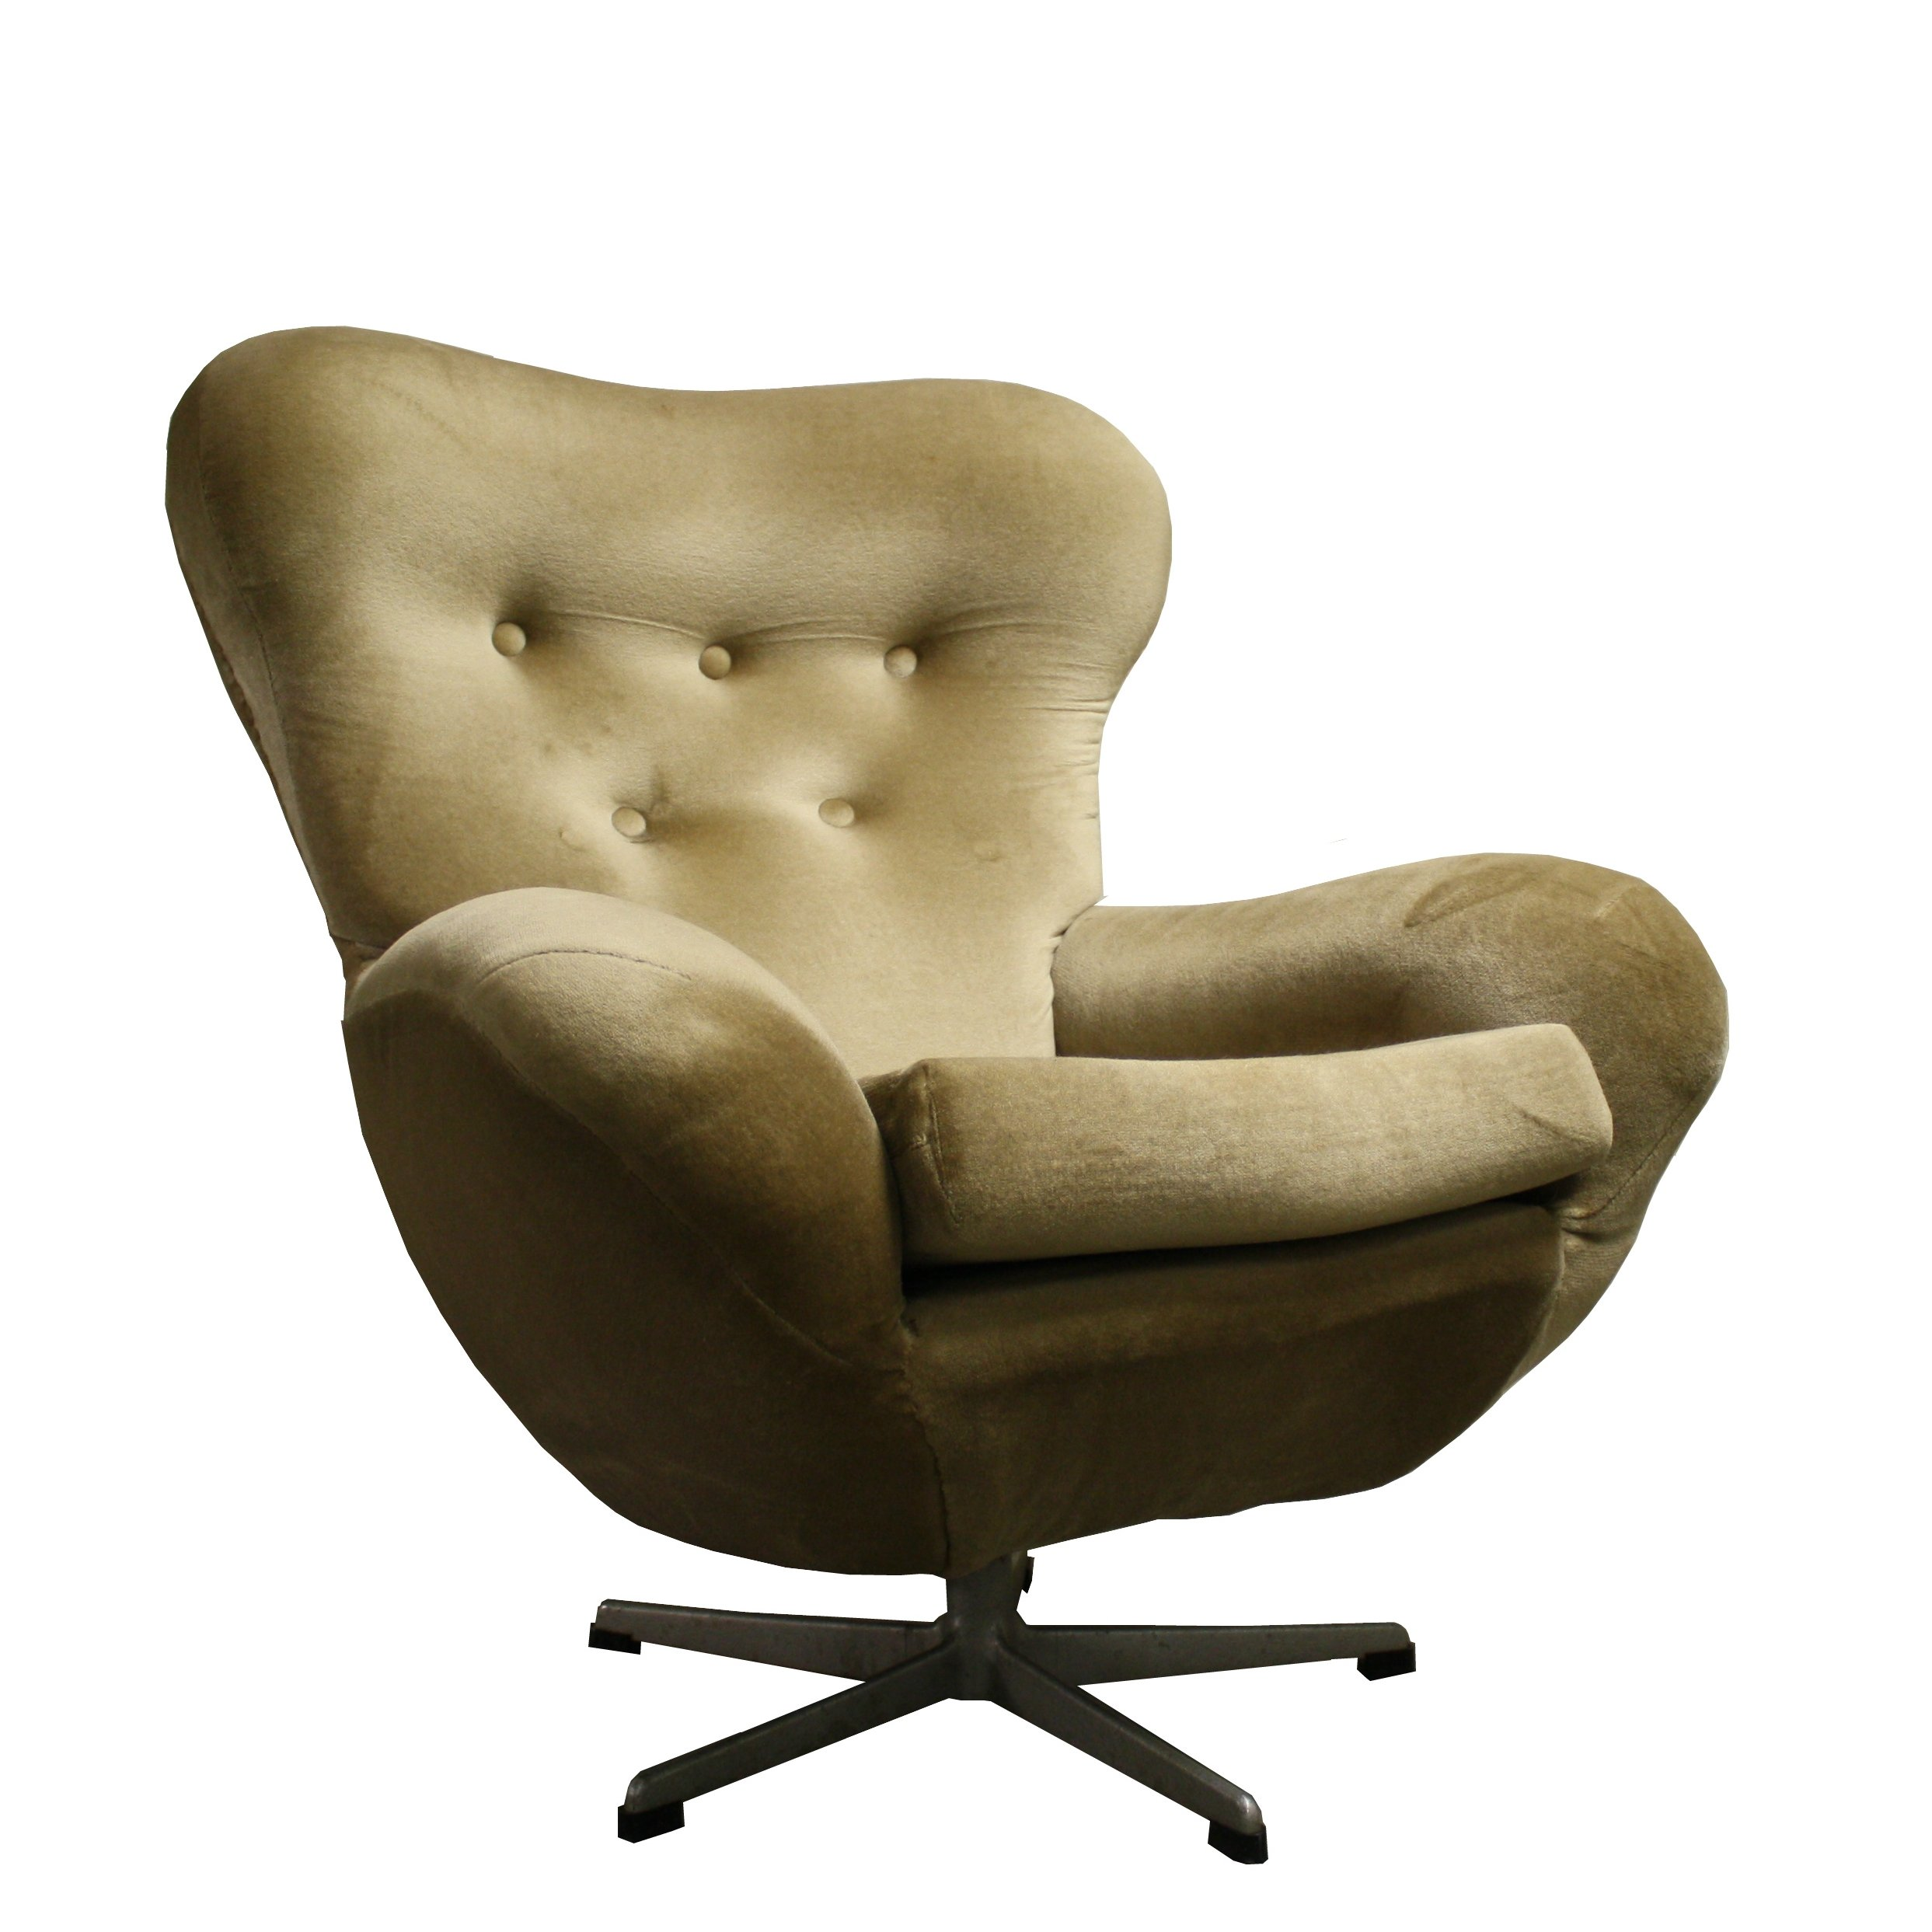 Image of: Mid Century Modern Design Egg Swivel Chair 1960 S 78973